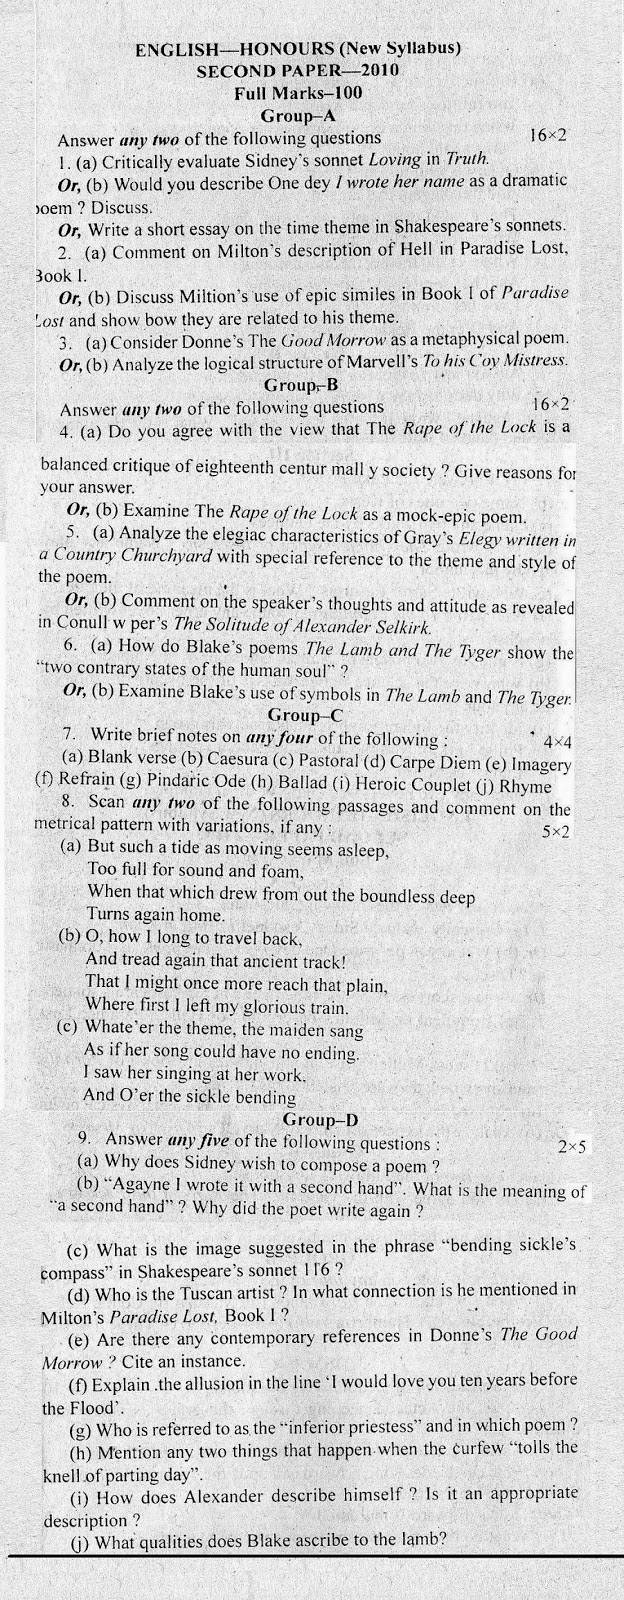 C.U. English Honours Question Paper 2010 [Second Paper